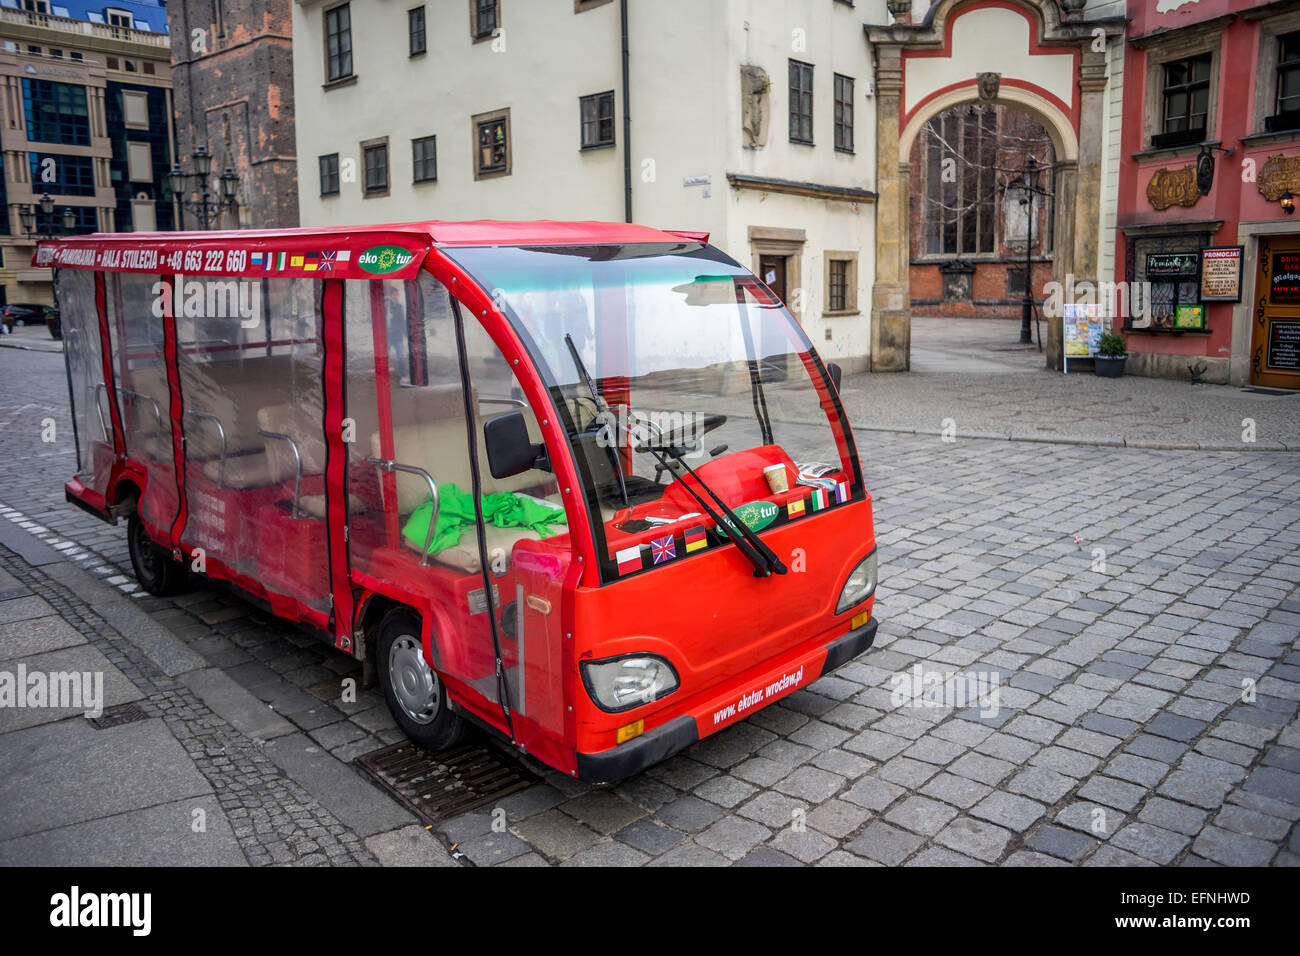 Tourist vehicle for exploring the city Wroclaw Old Market - Stock Image